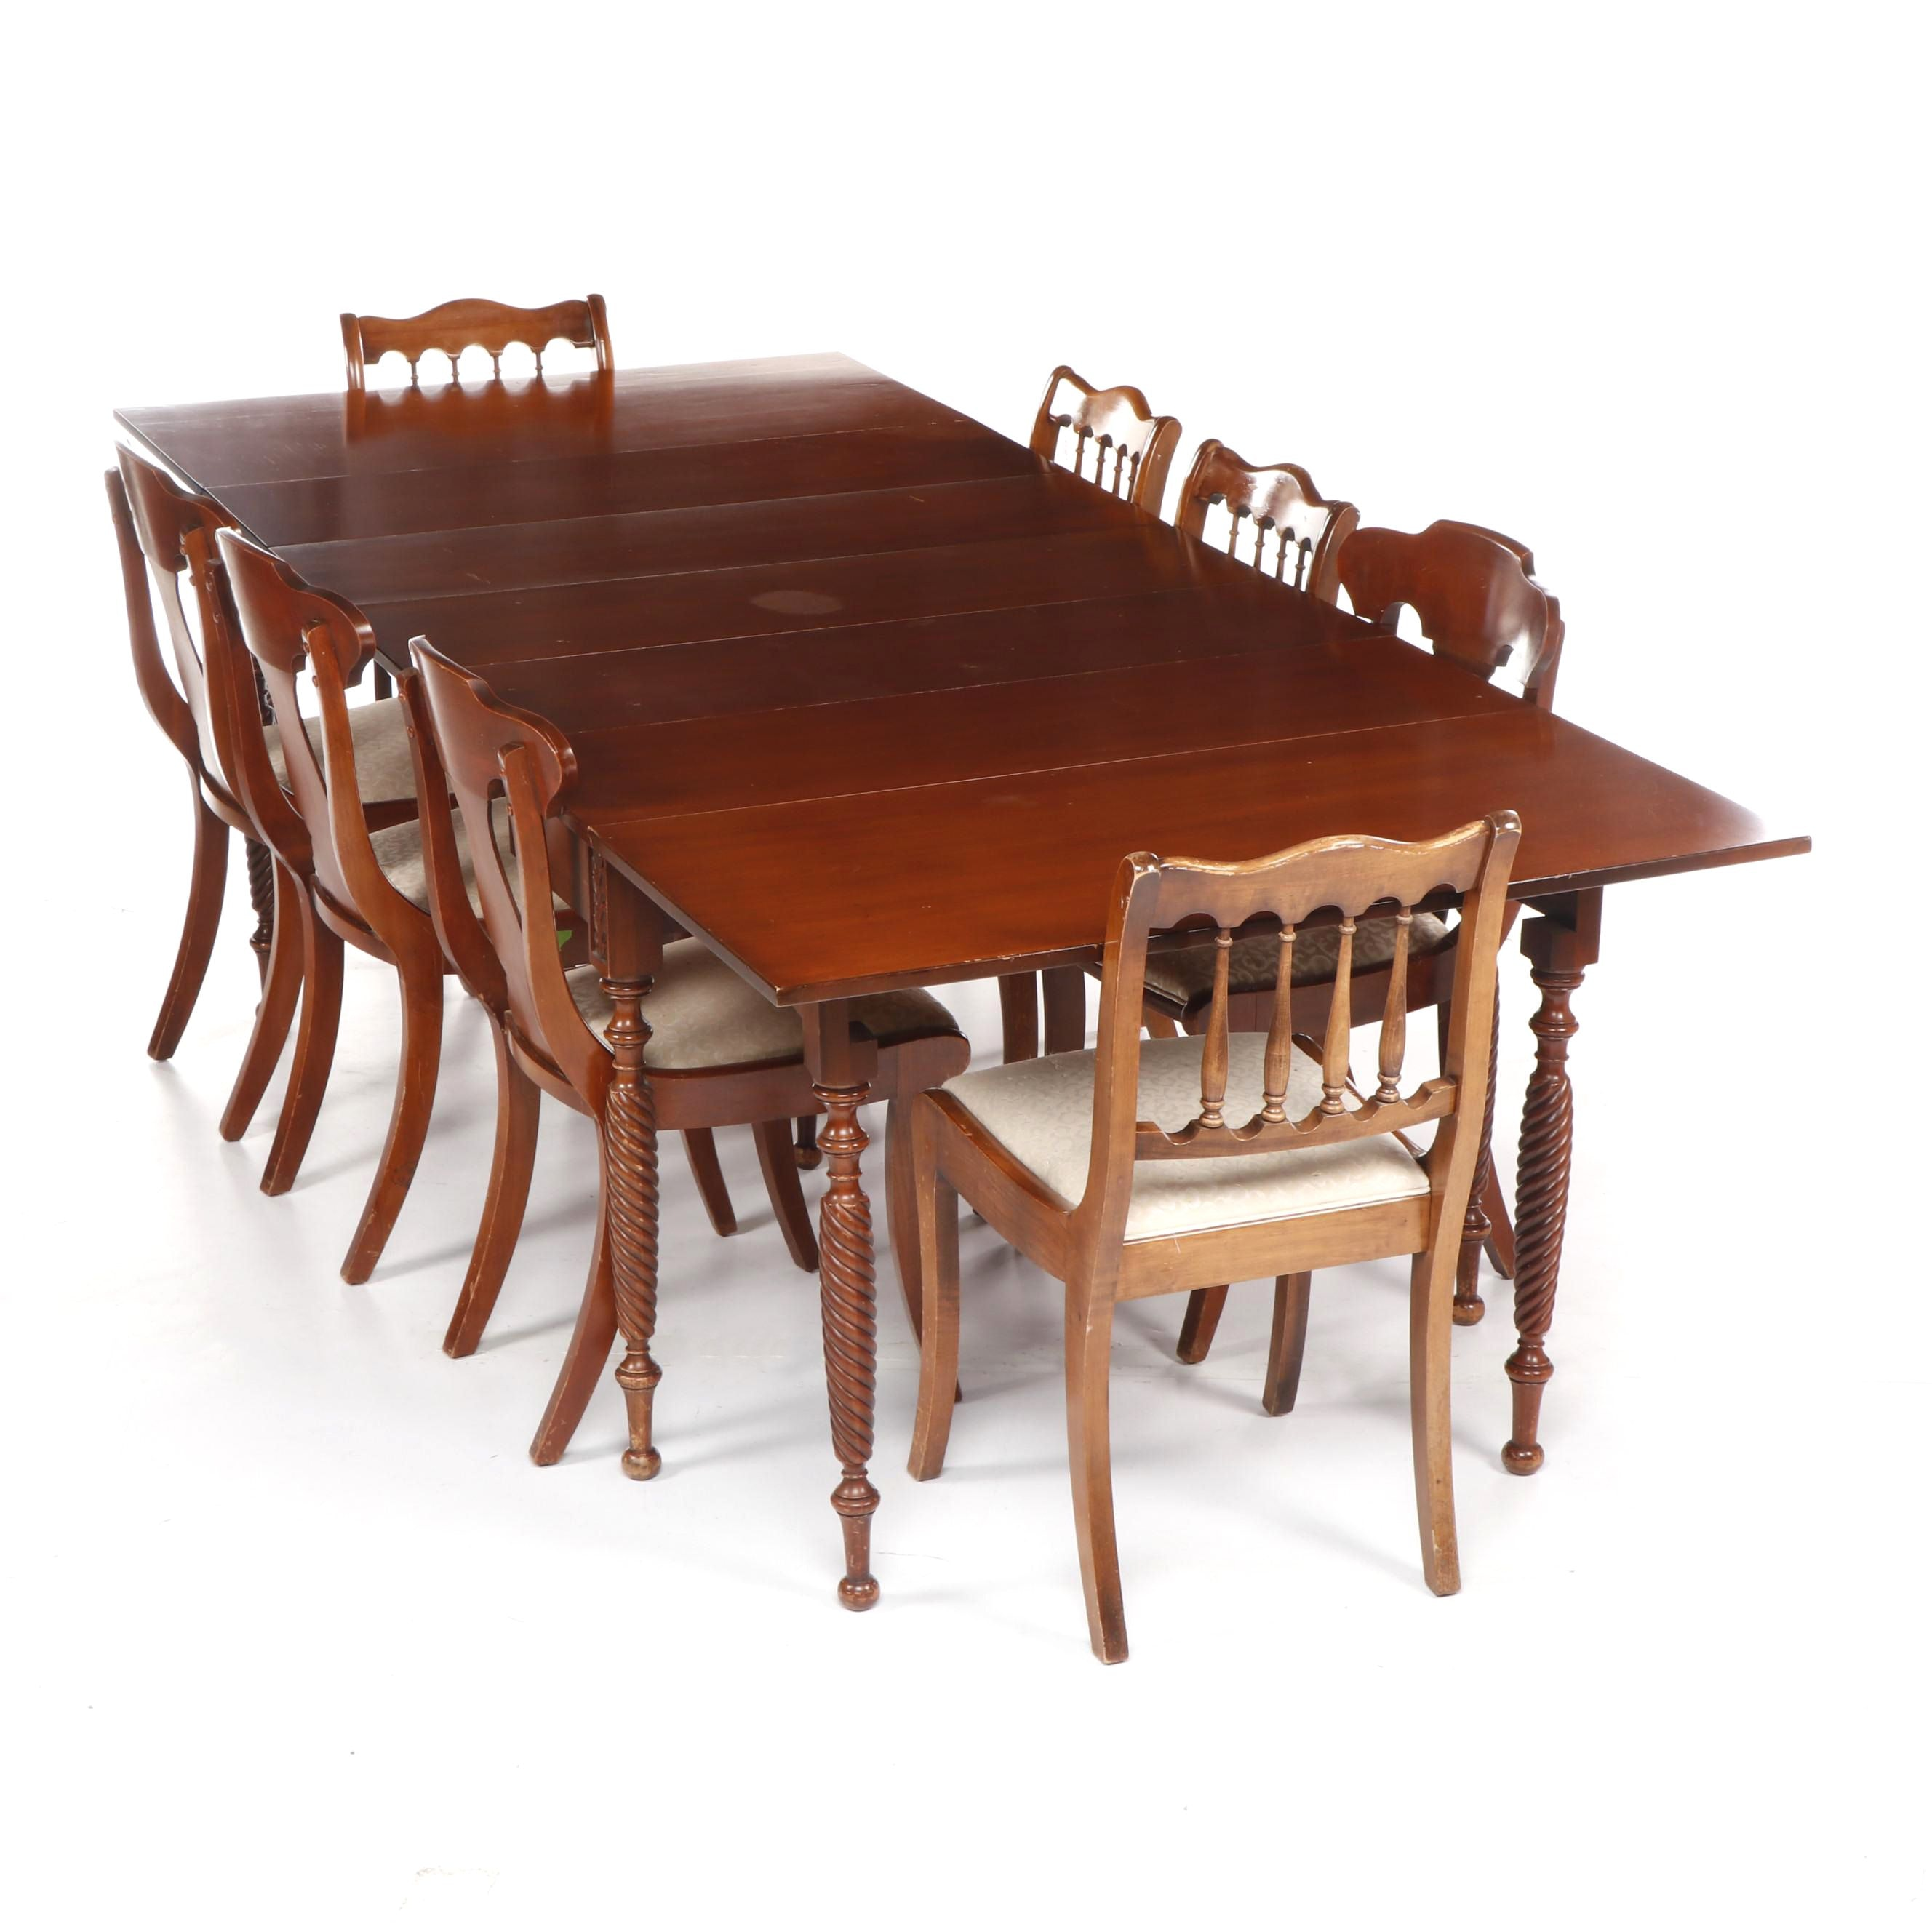 Late Federal Style Cherry-Finish Drop Leaf Dining Table with Eight Side Chairs